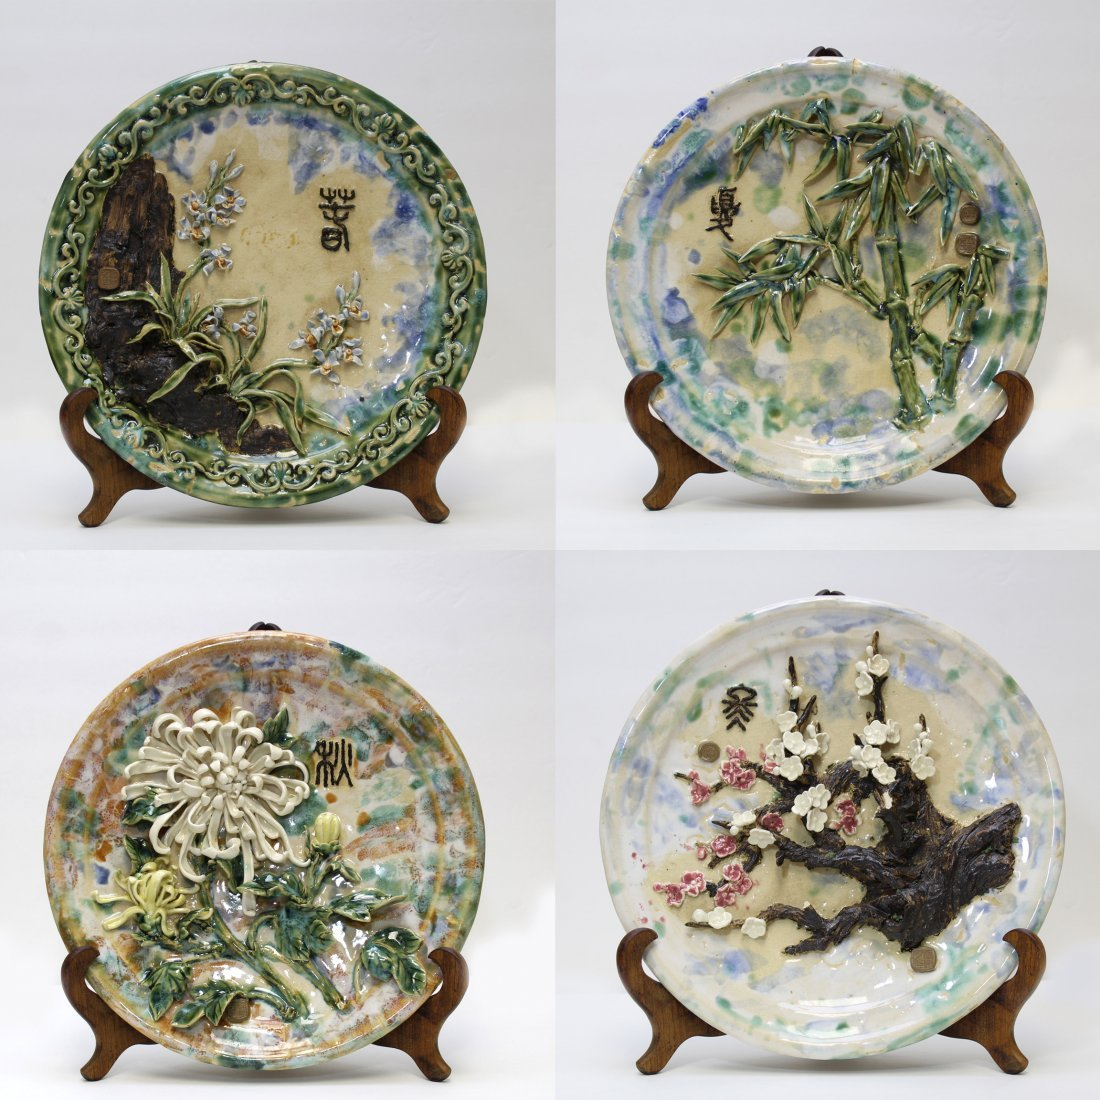 4 Four-Season Porcelain Decorative Plates